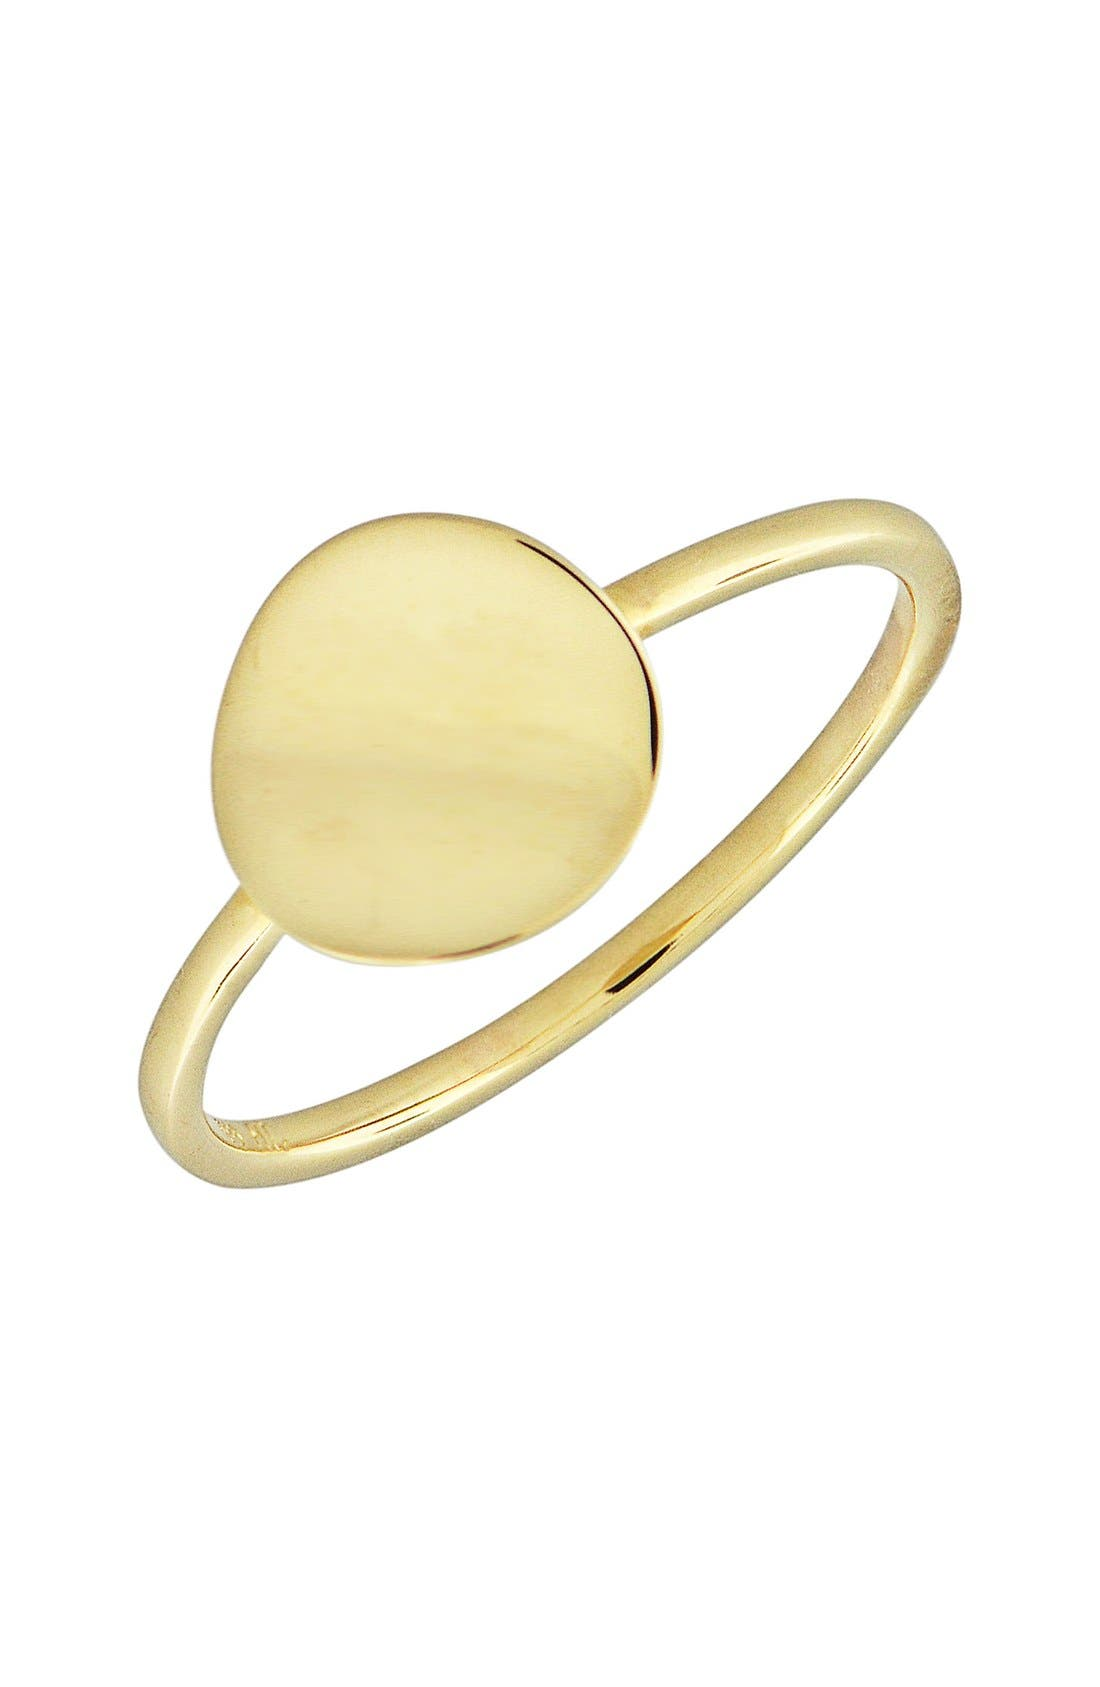 14k Gold Concave Disc Ring,                         Main,                         color,